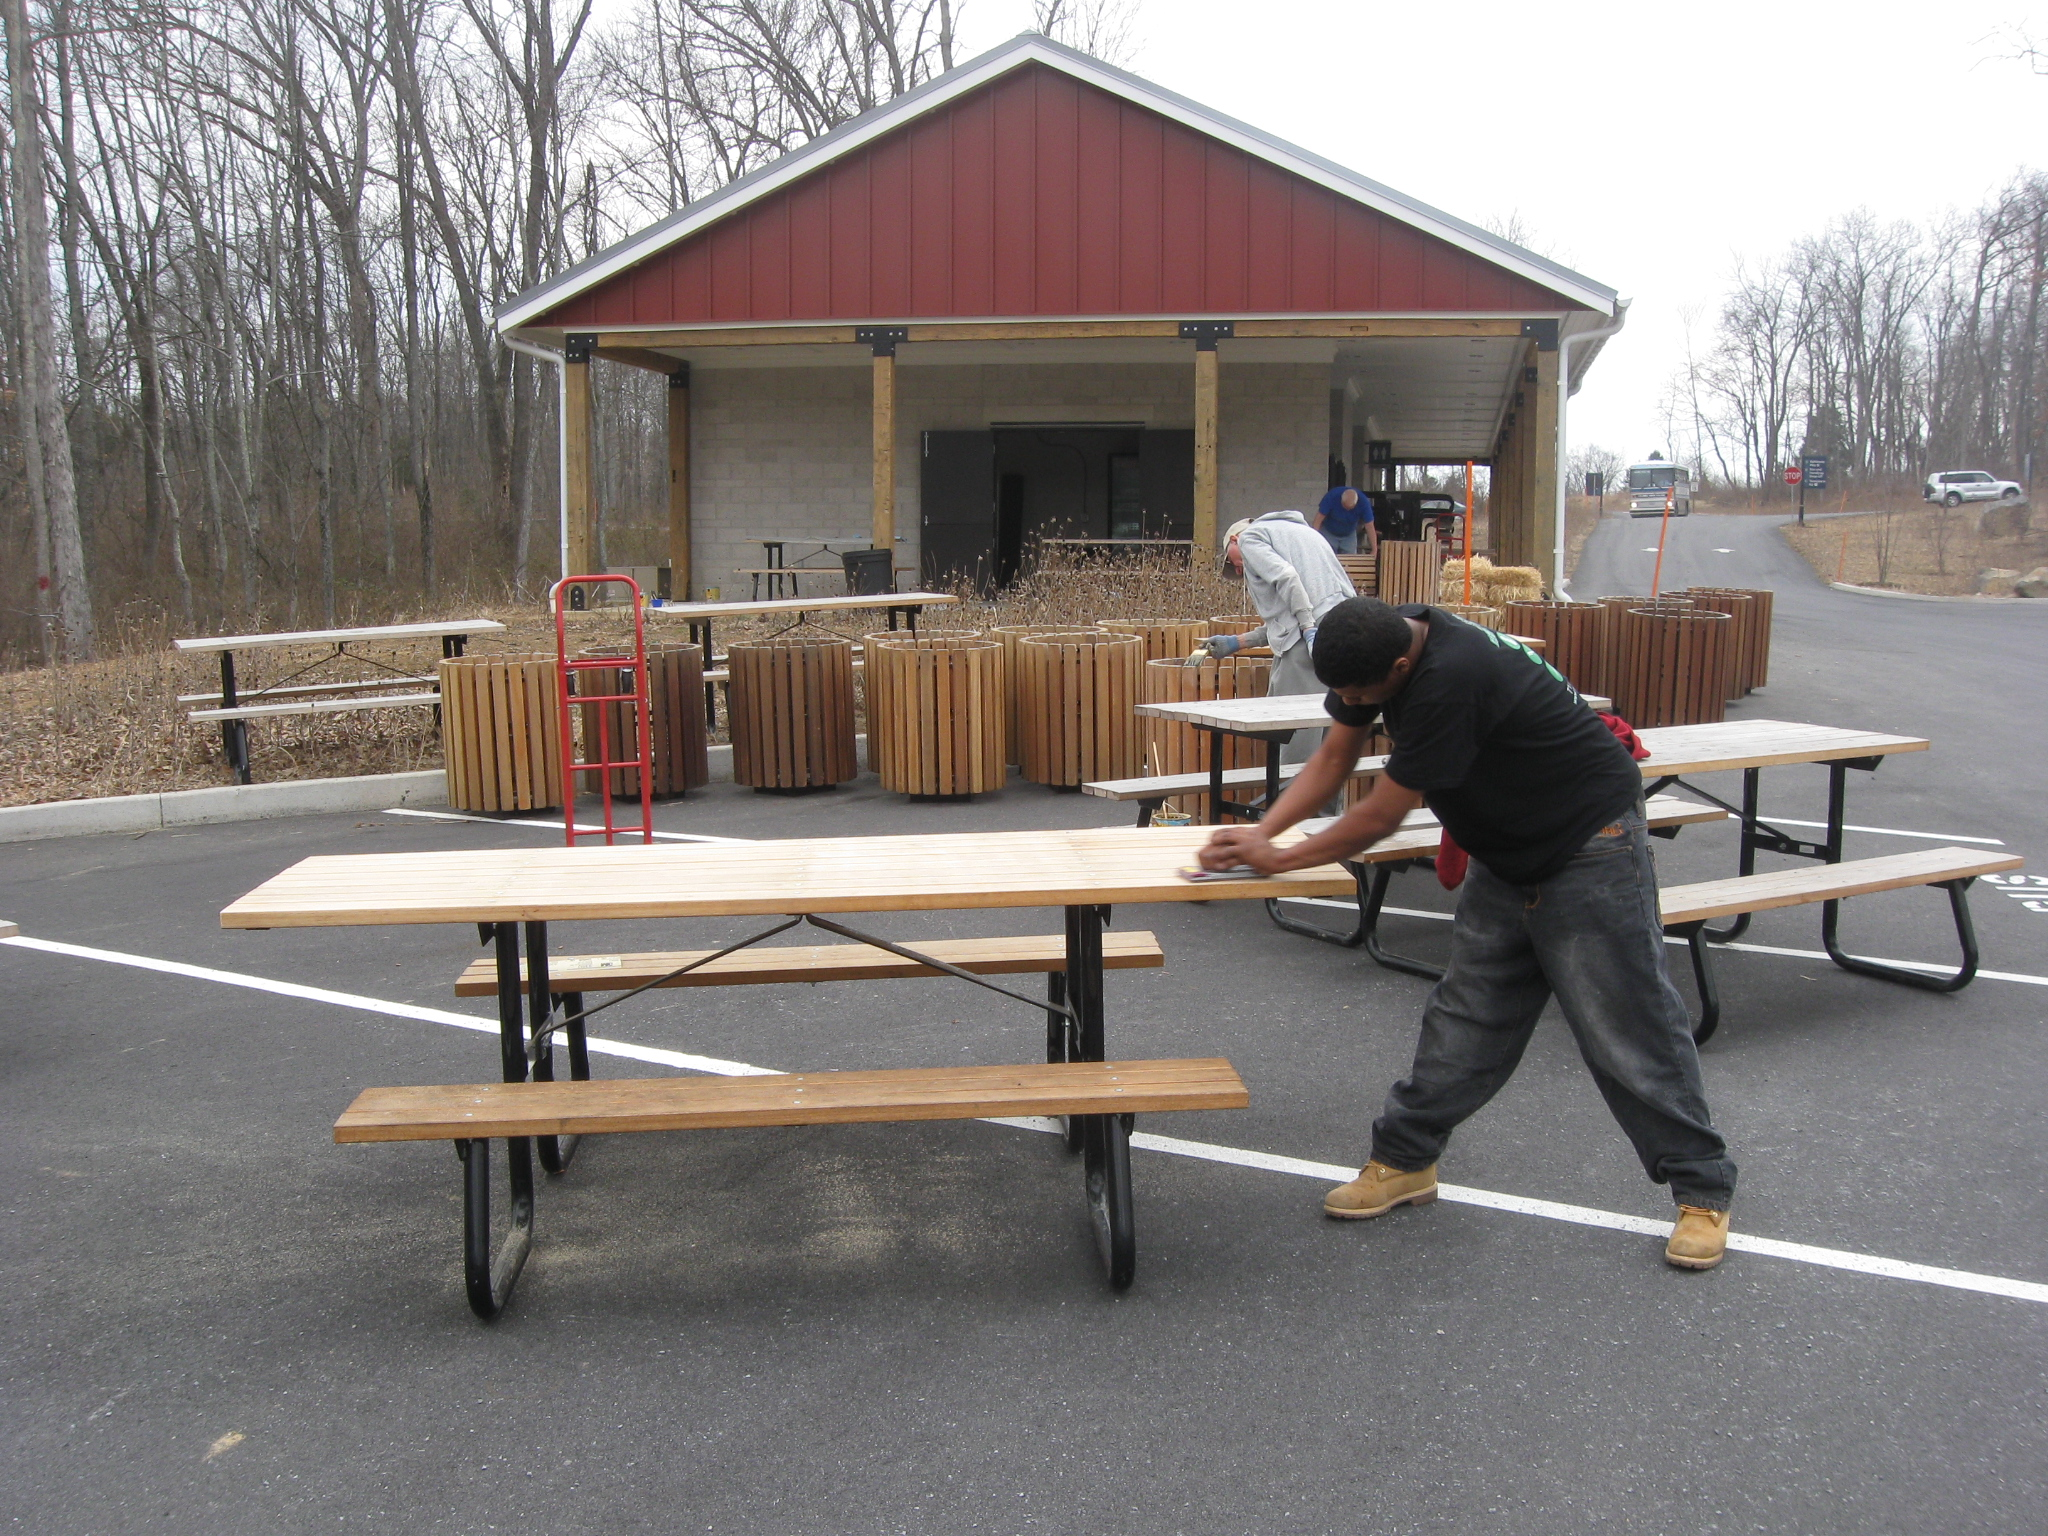 Visitor Center Parking Lots Picnic Area Preparation Gettysburg Daily - 12 person picnic table